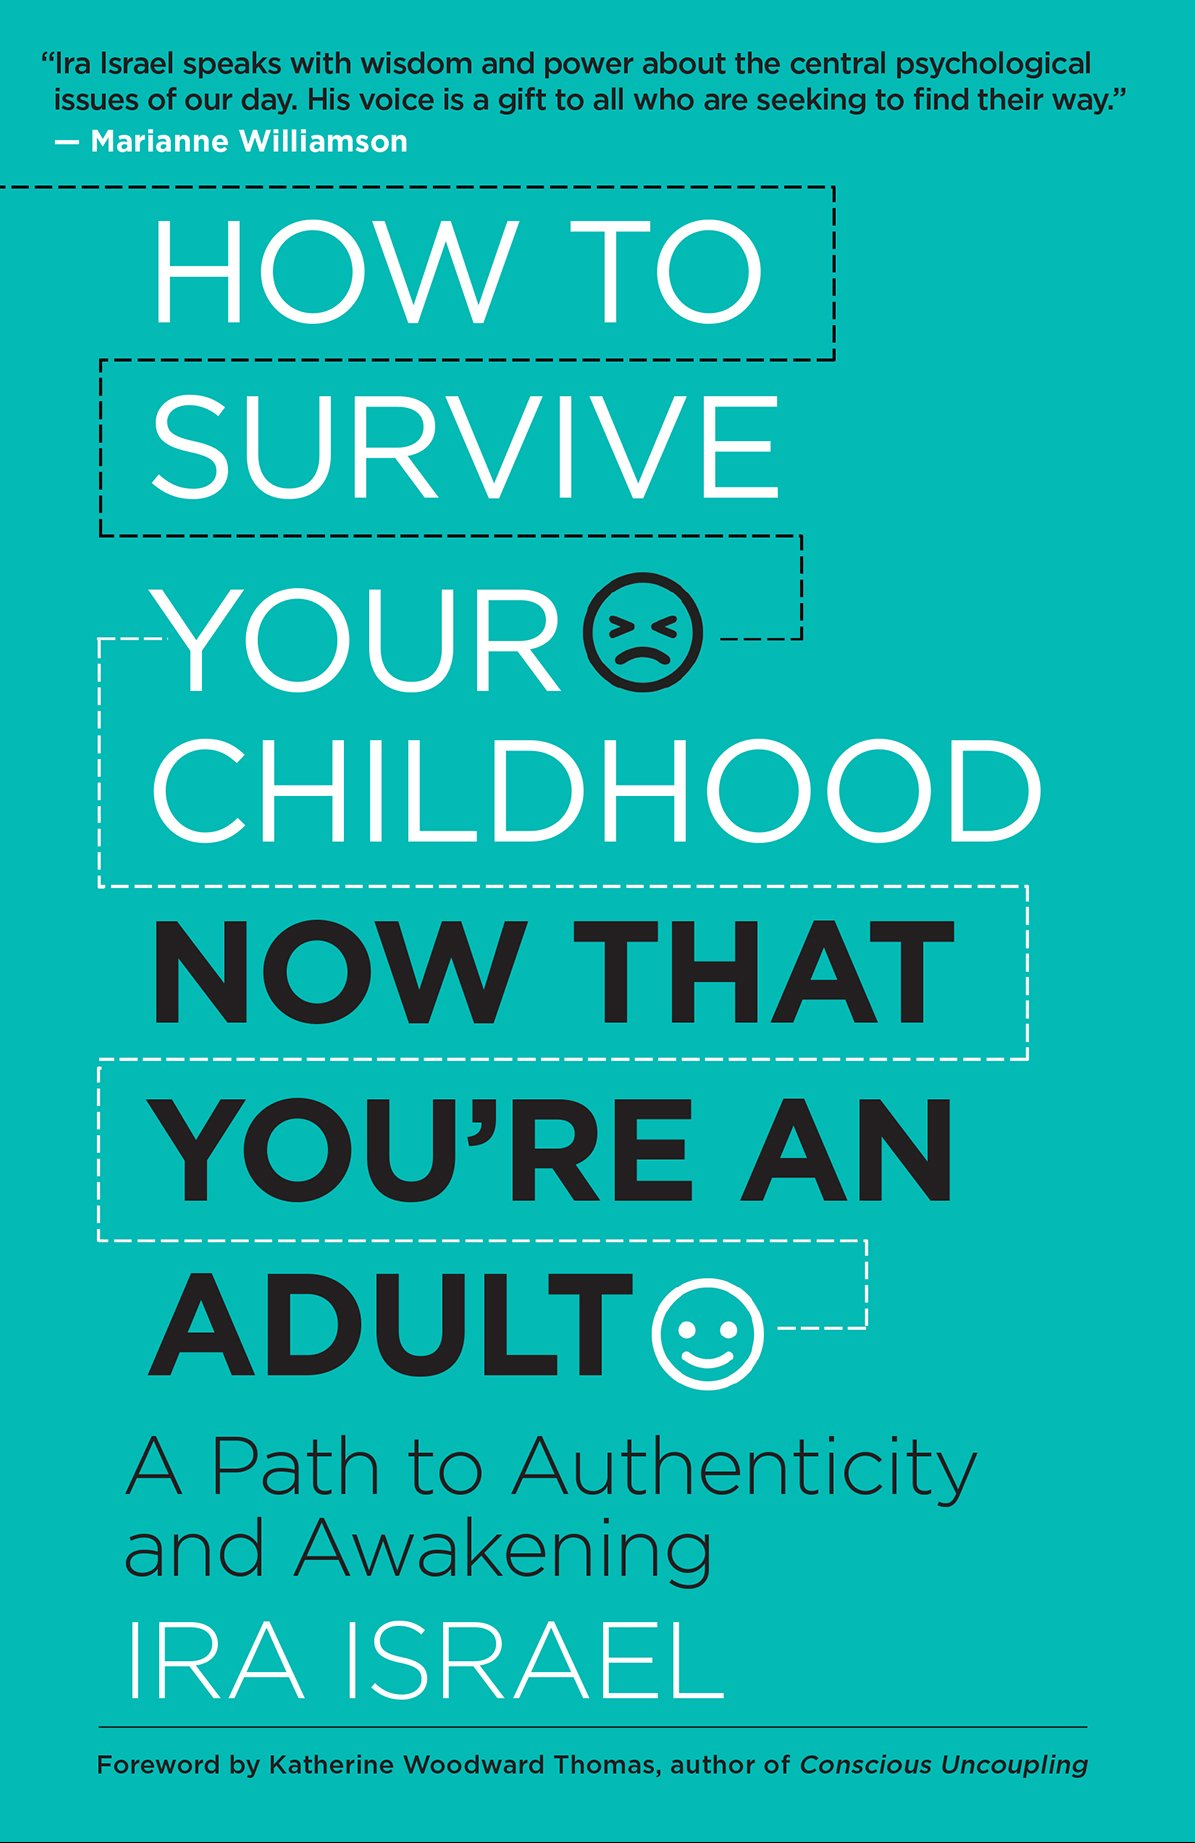 How to survive your childhood now that youre an adult a path to how to survive your childhood now that youre an adult a path to authenticity and awakening ira israel 9781608685073 amazon books fandeluxe Images